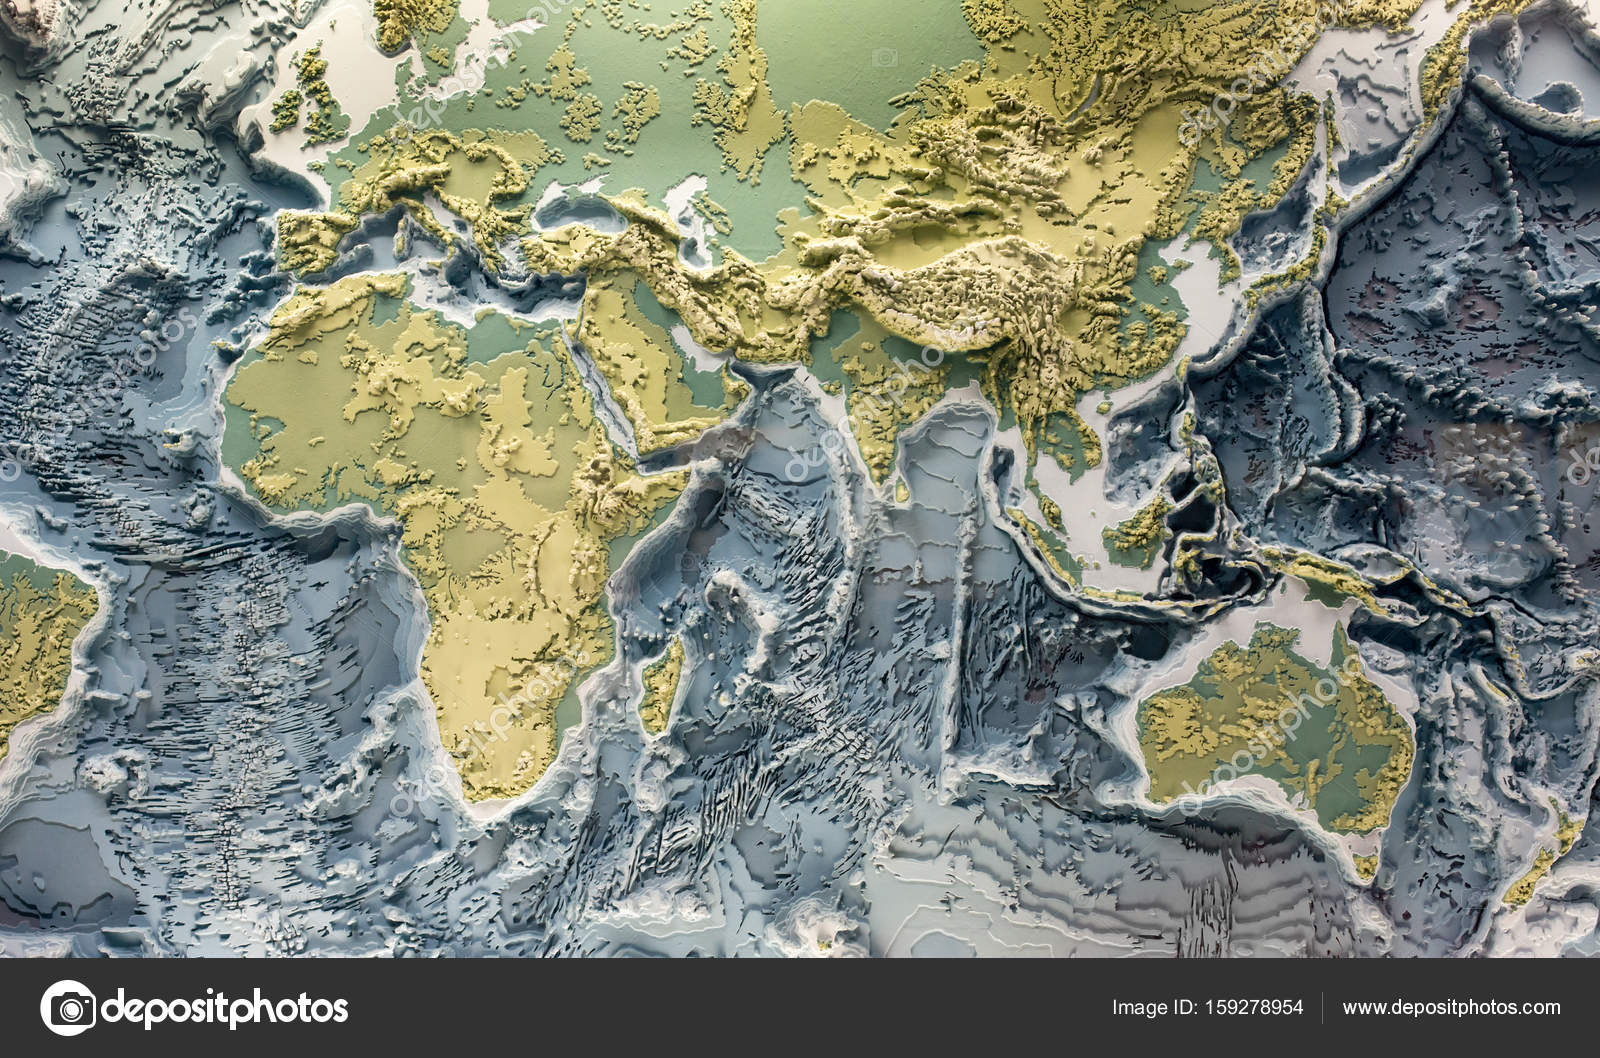 World relief 3d model stock photo budabar 159278954 3d printed model of earth relief with topographic heights of mountains and depth of oceans photo by budabar gumiabroncs Choice Image